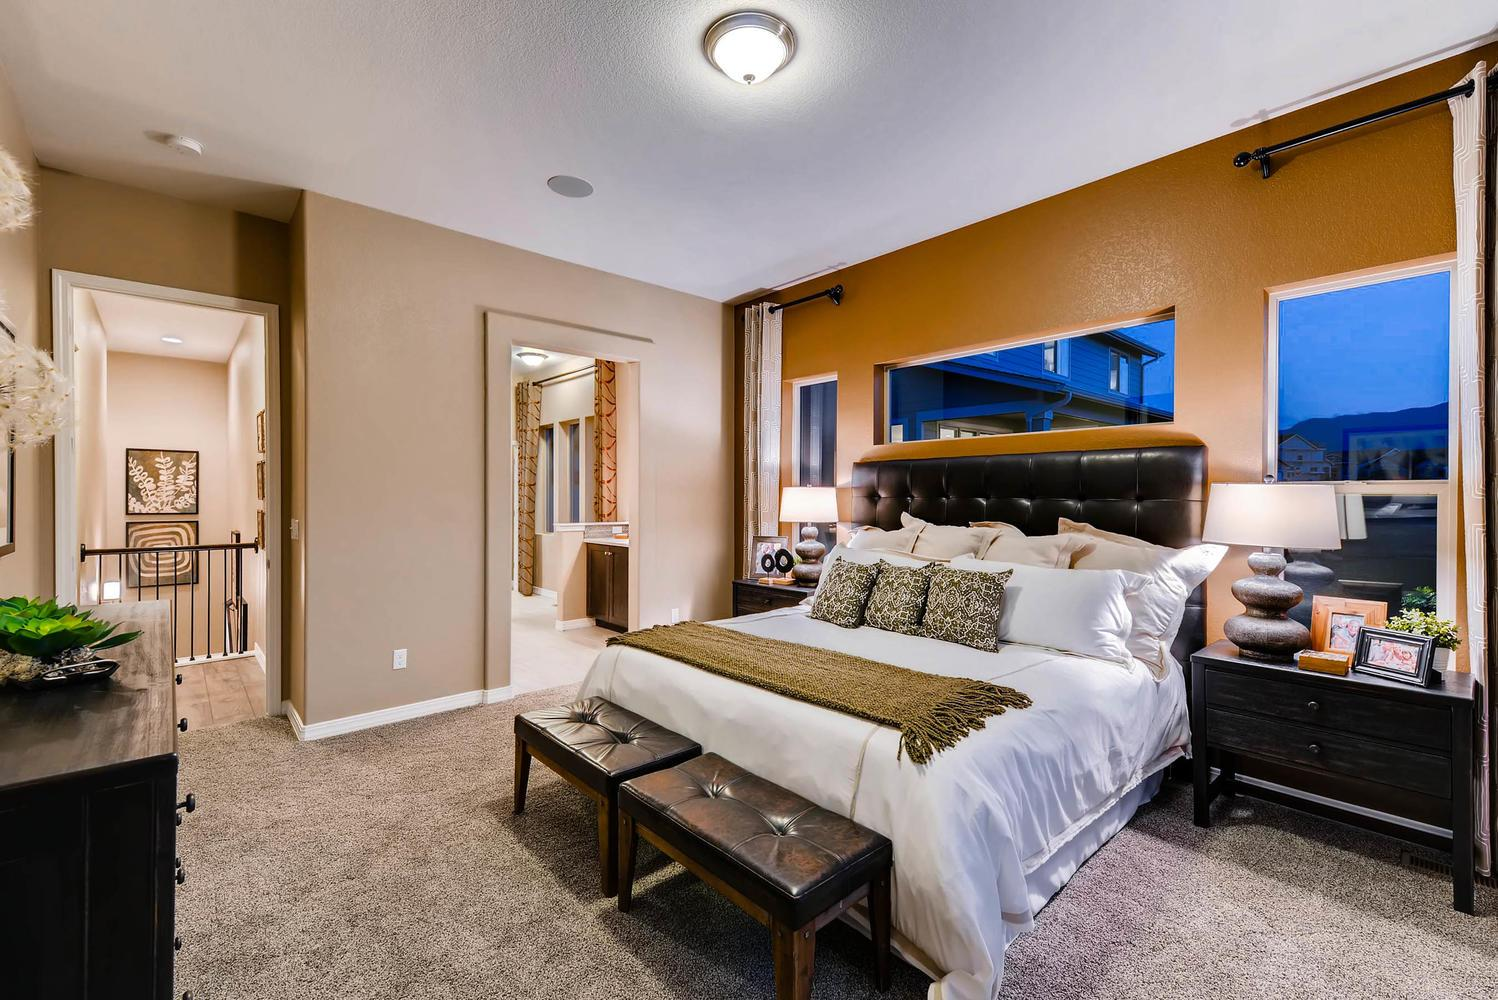 Bedroom featured in the Daybreak By Classic Homes in Colorado Springs, CO